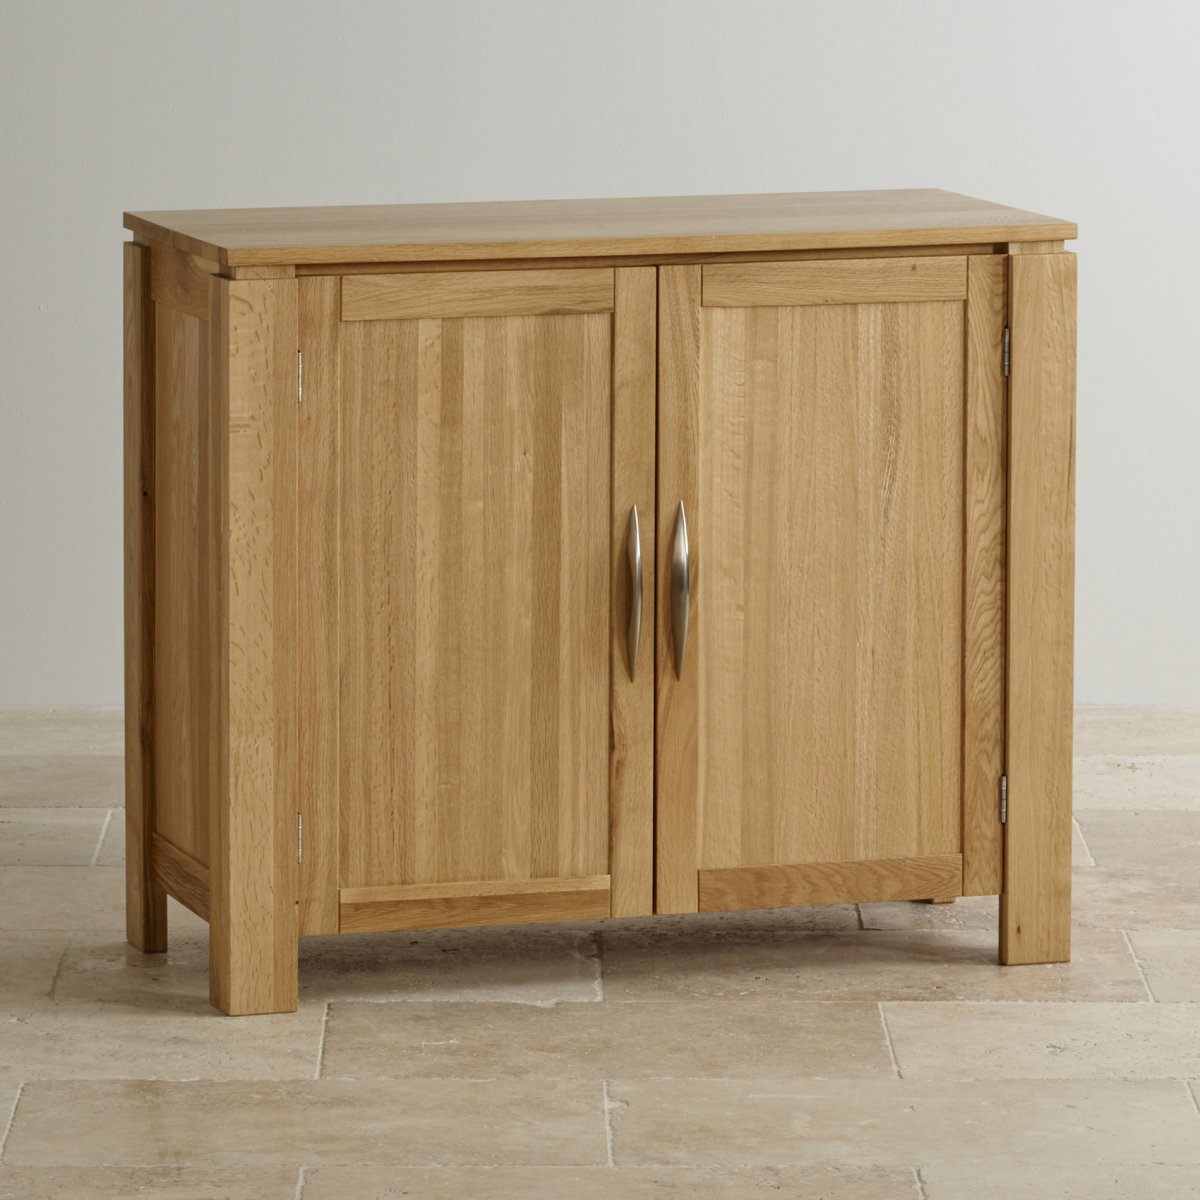 Galway small sideboard in natural solid oak oak for Solid oak furniture